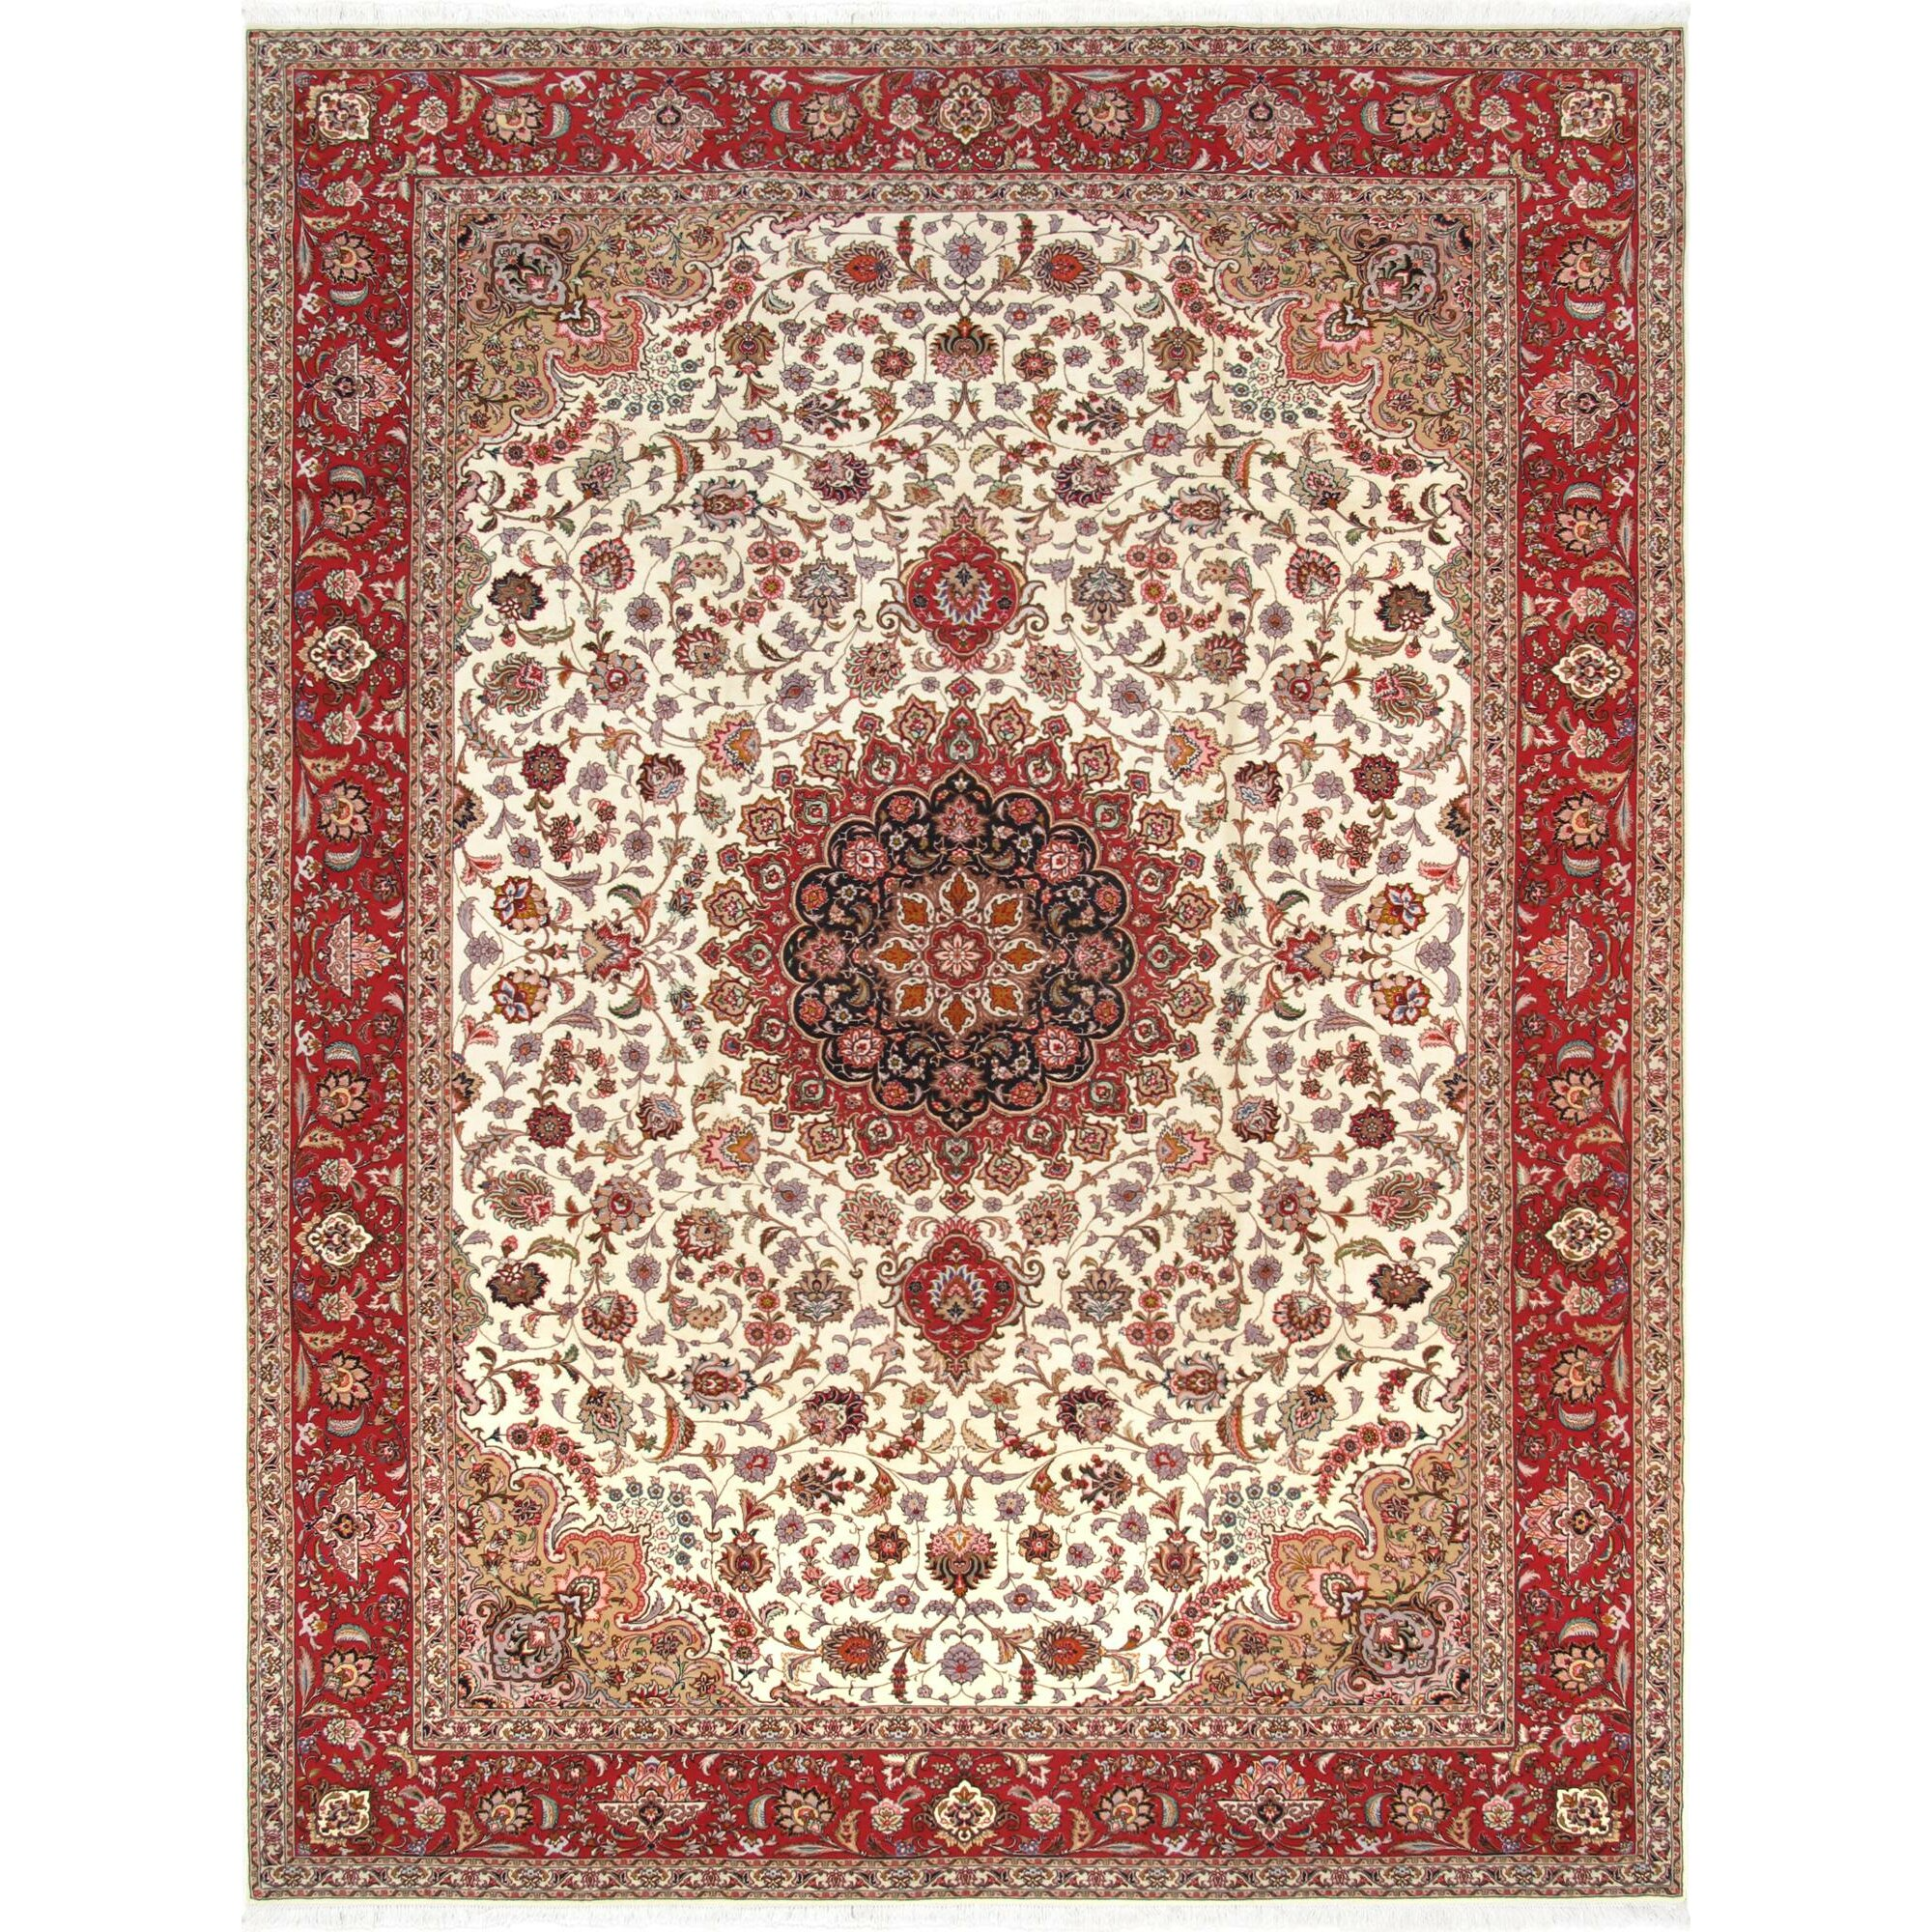 Hand Knotted Persian Tabriz Wool Area Rug Ebth: Pasargad Tabriz Collection Hand-Knotted Silk & Wool Area